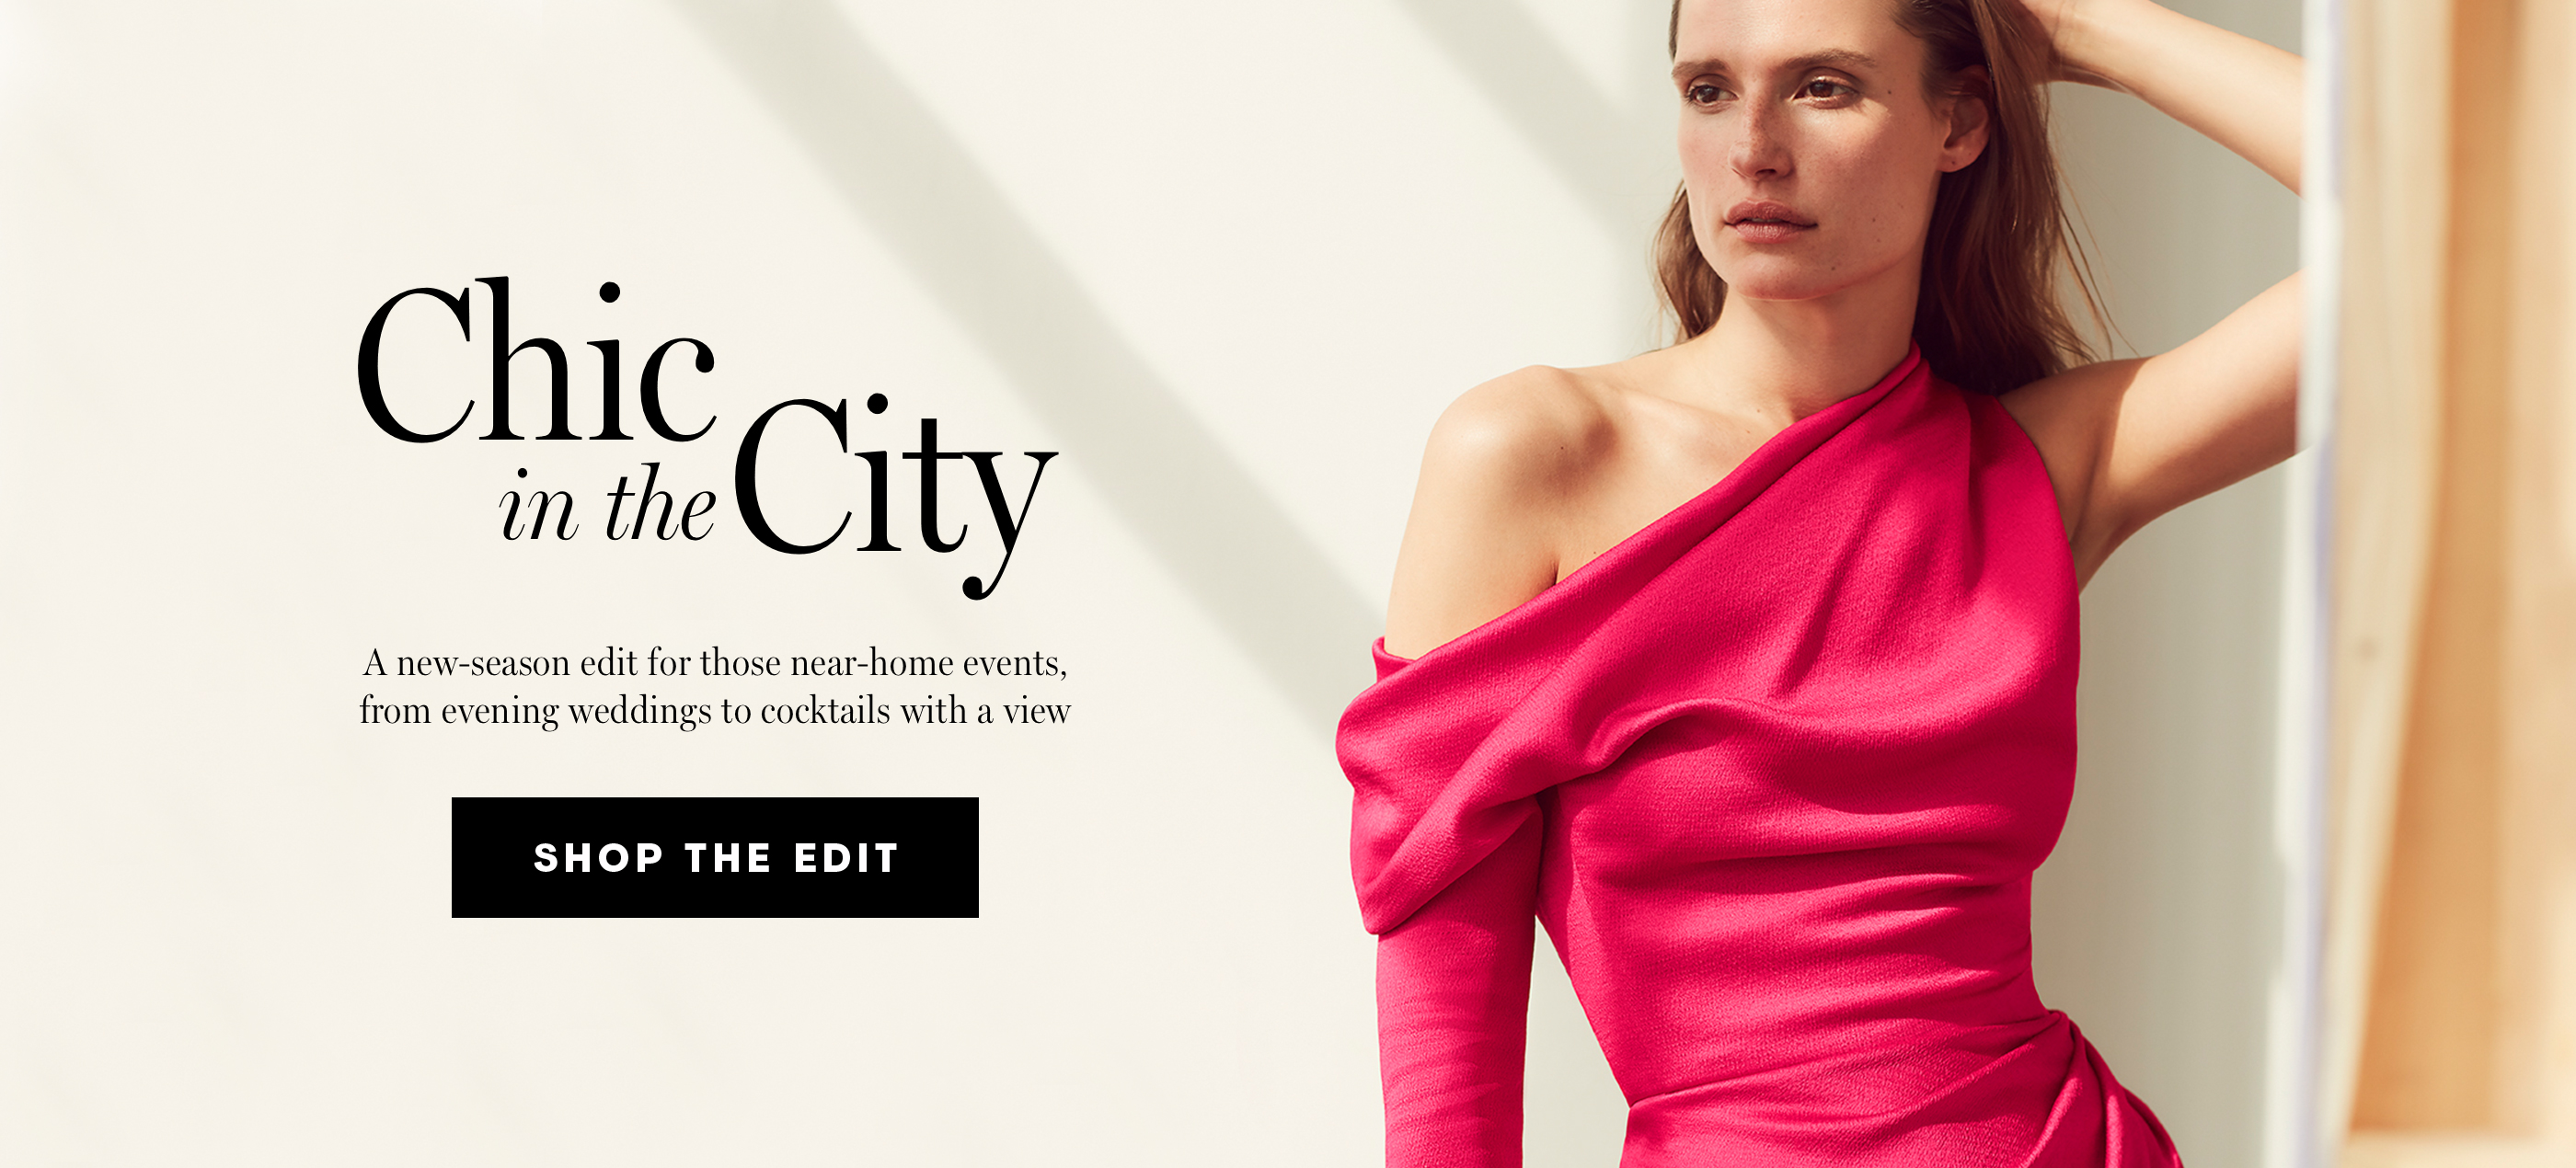 ccc8d1d1e2 Chic in the City. The Iconic Dress Collection